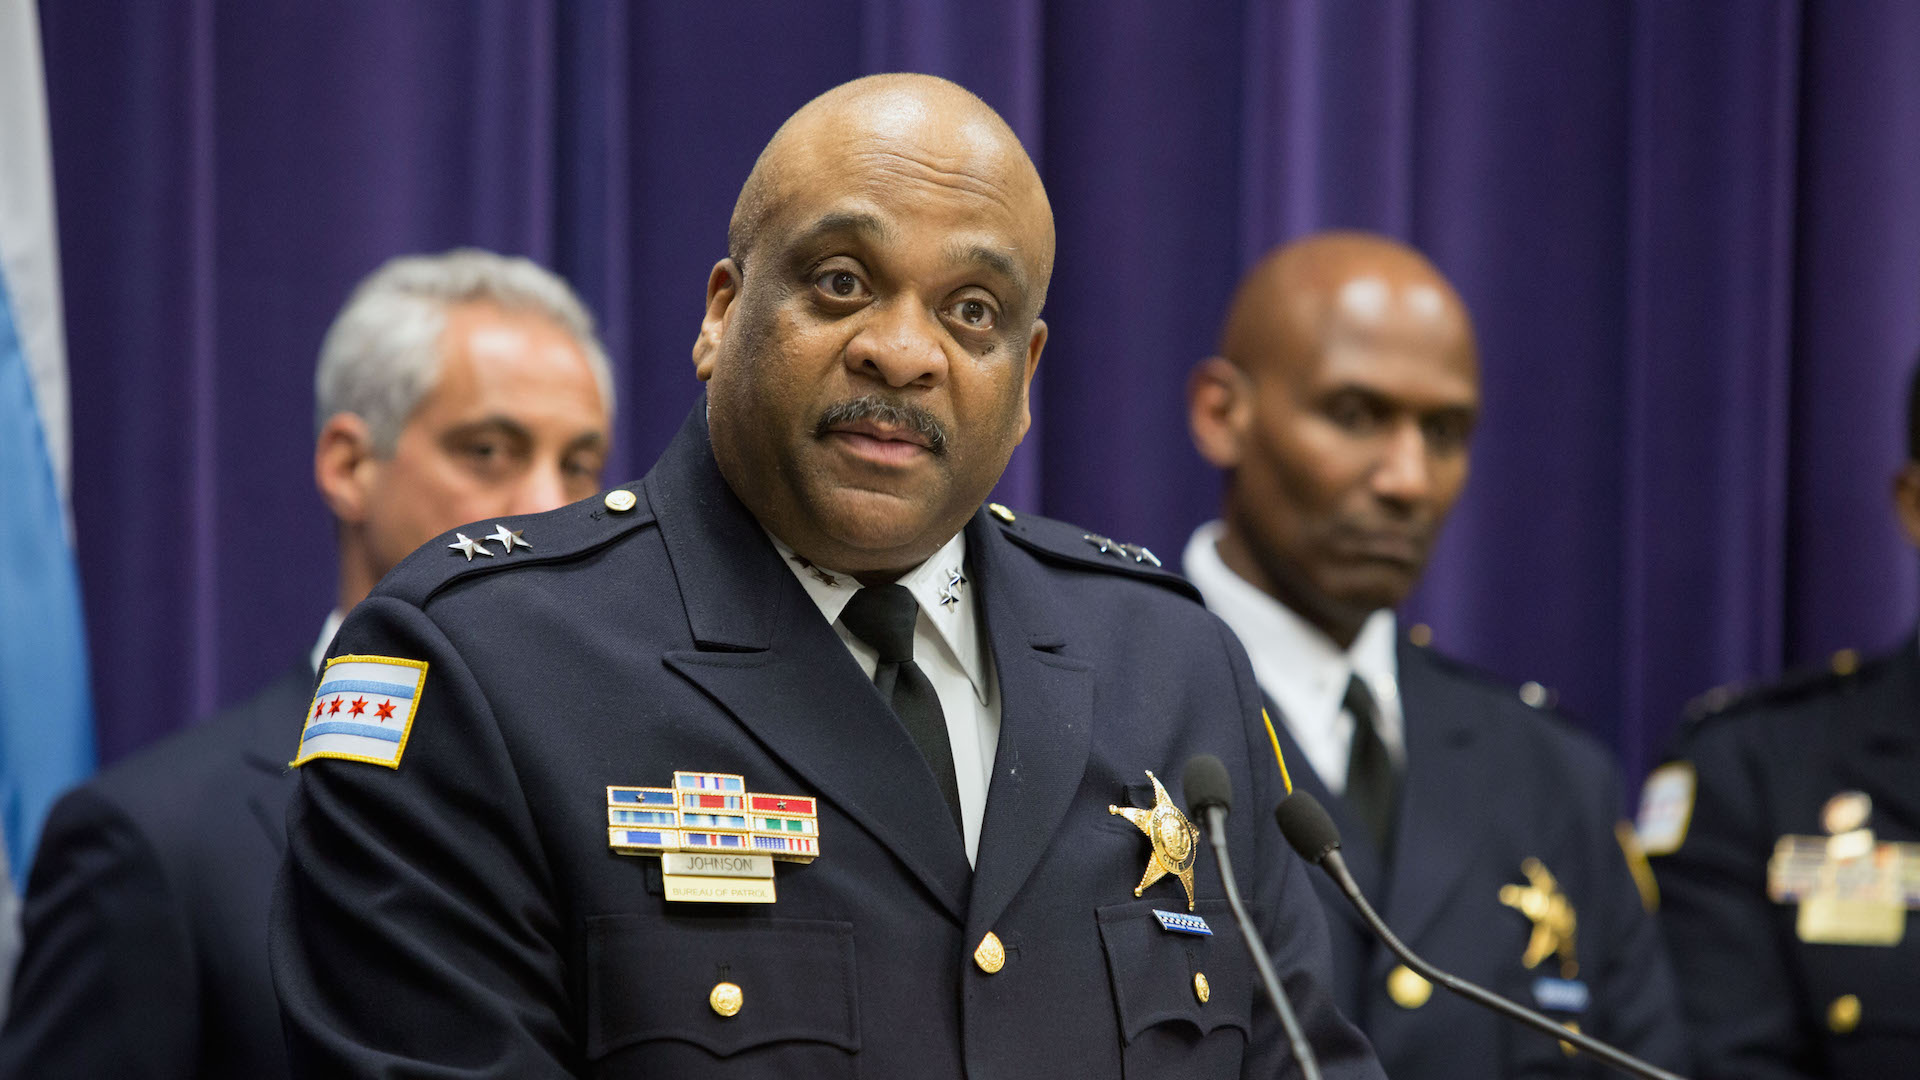 Chicago's staggering rise in gun violence and killings